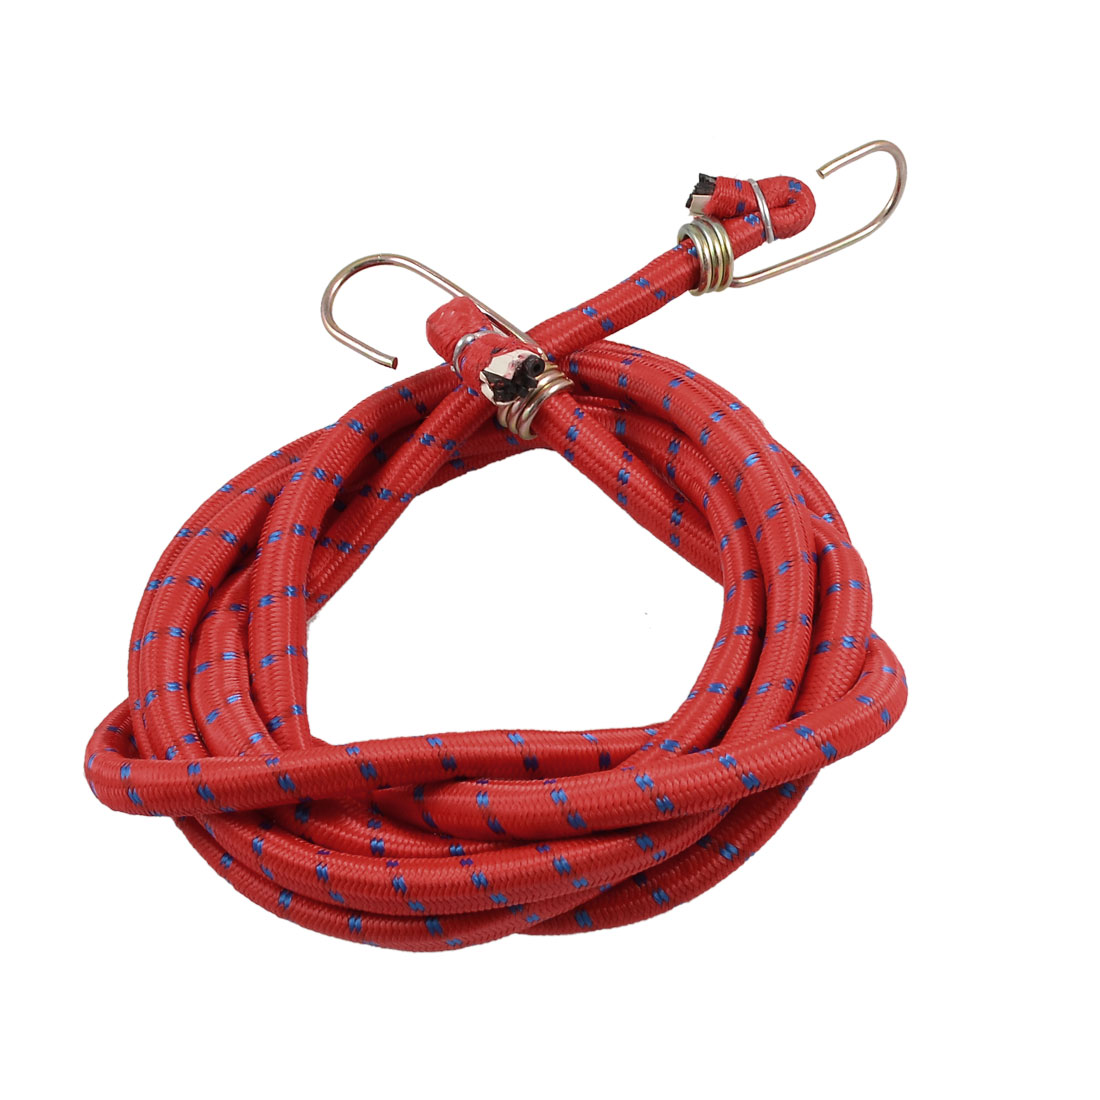 Metal Dual Hooks Blue Striped Nylon Round Motorcycle Luggage Cord Red 2.6 Meters